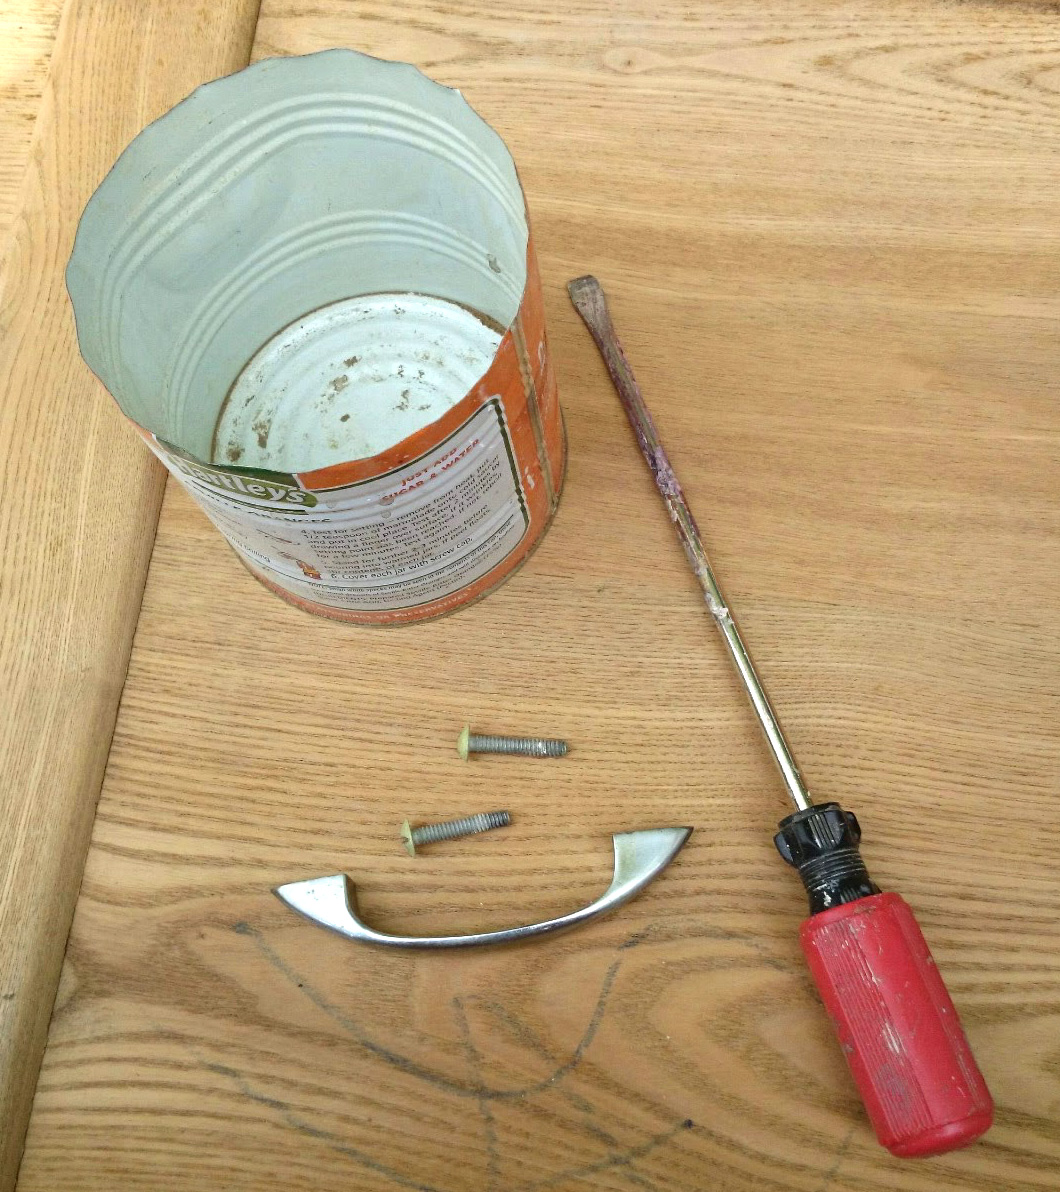 Picture of screwdriver and handles